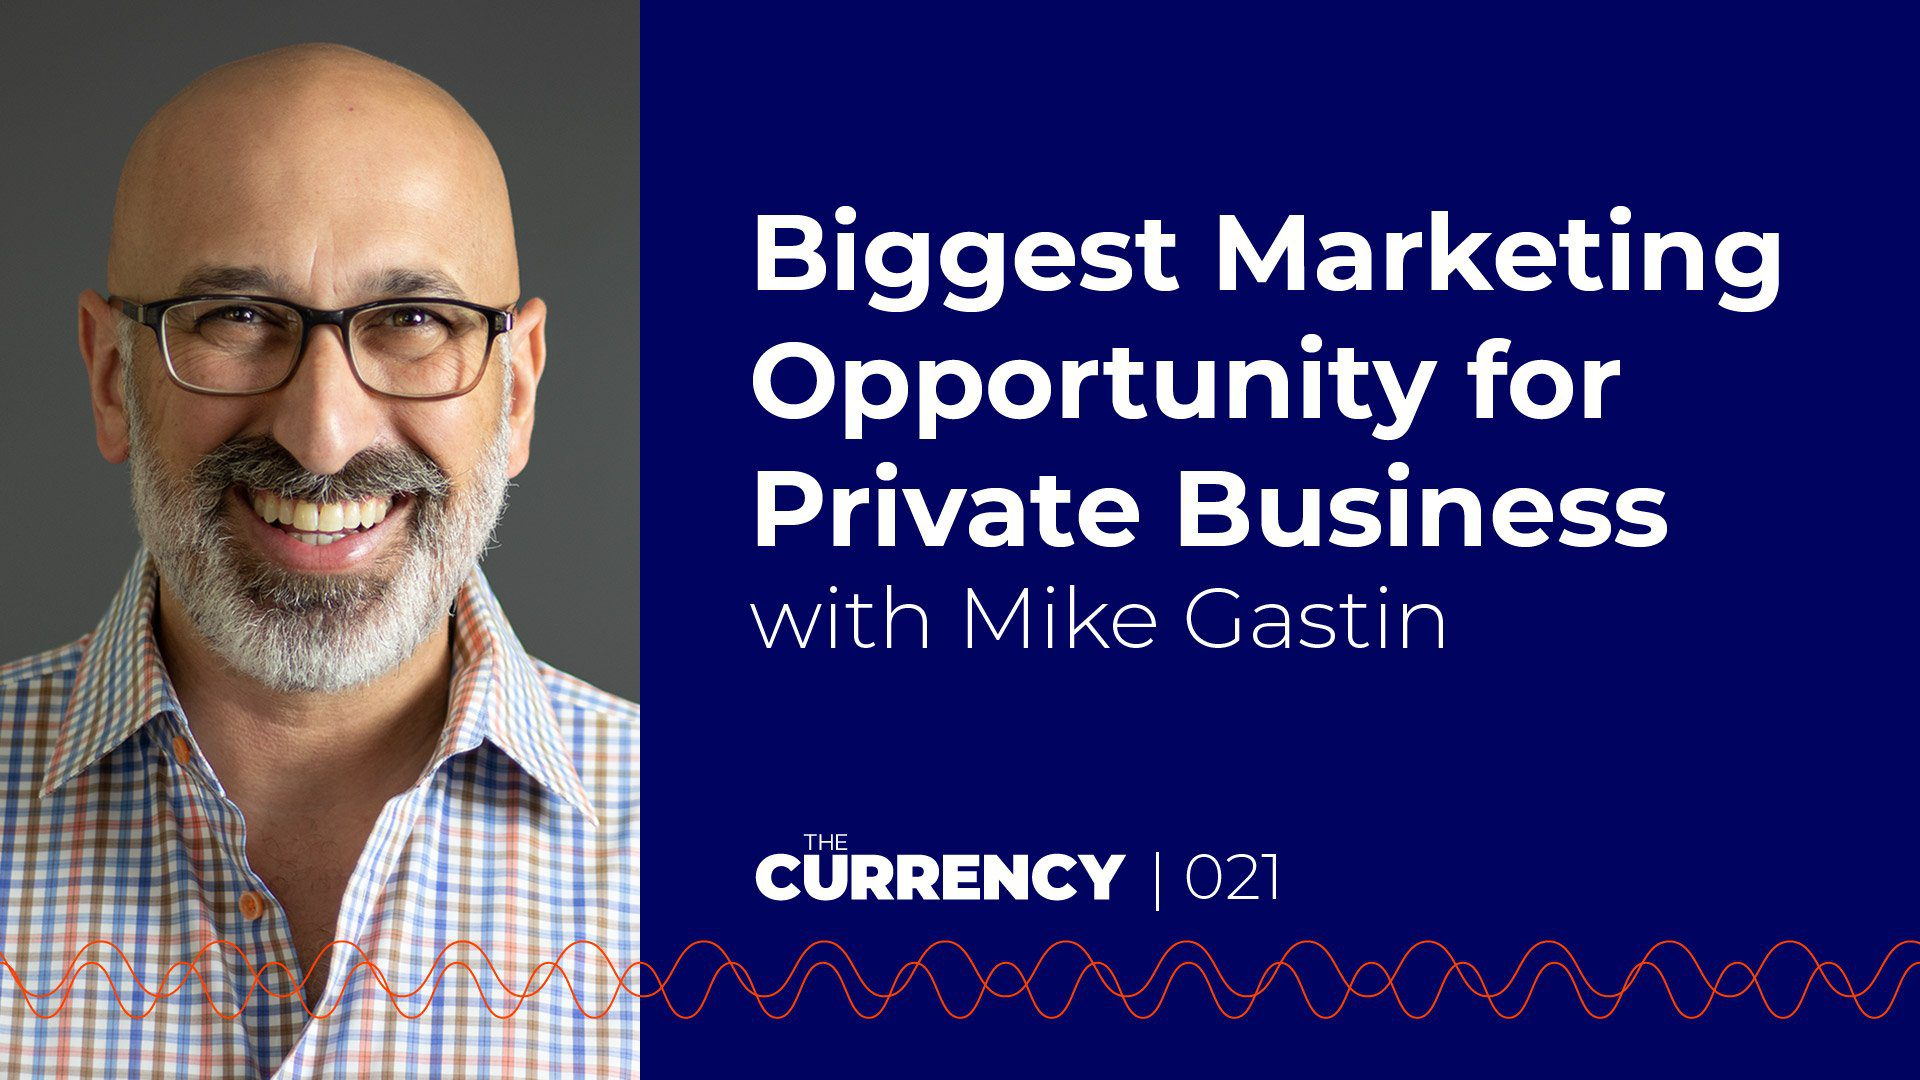 Mike Gastin on The Currency podcast